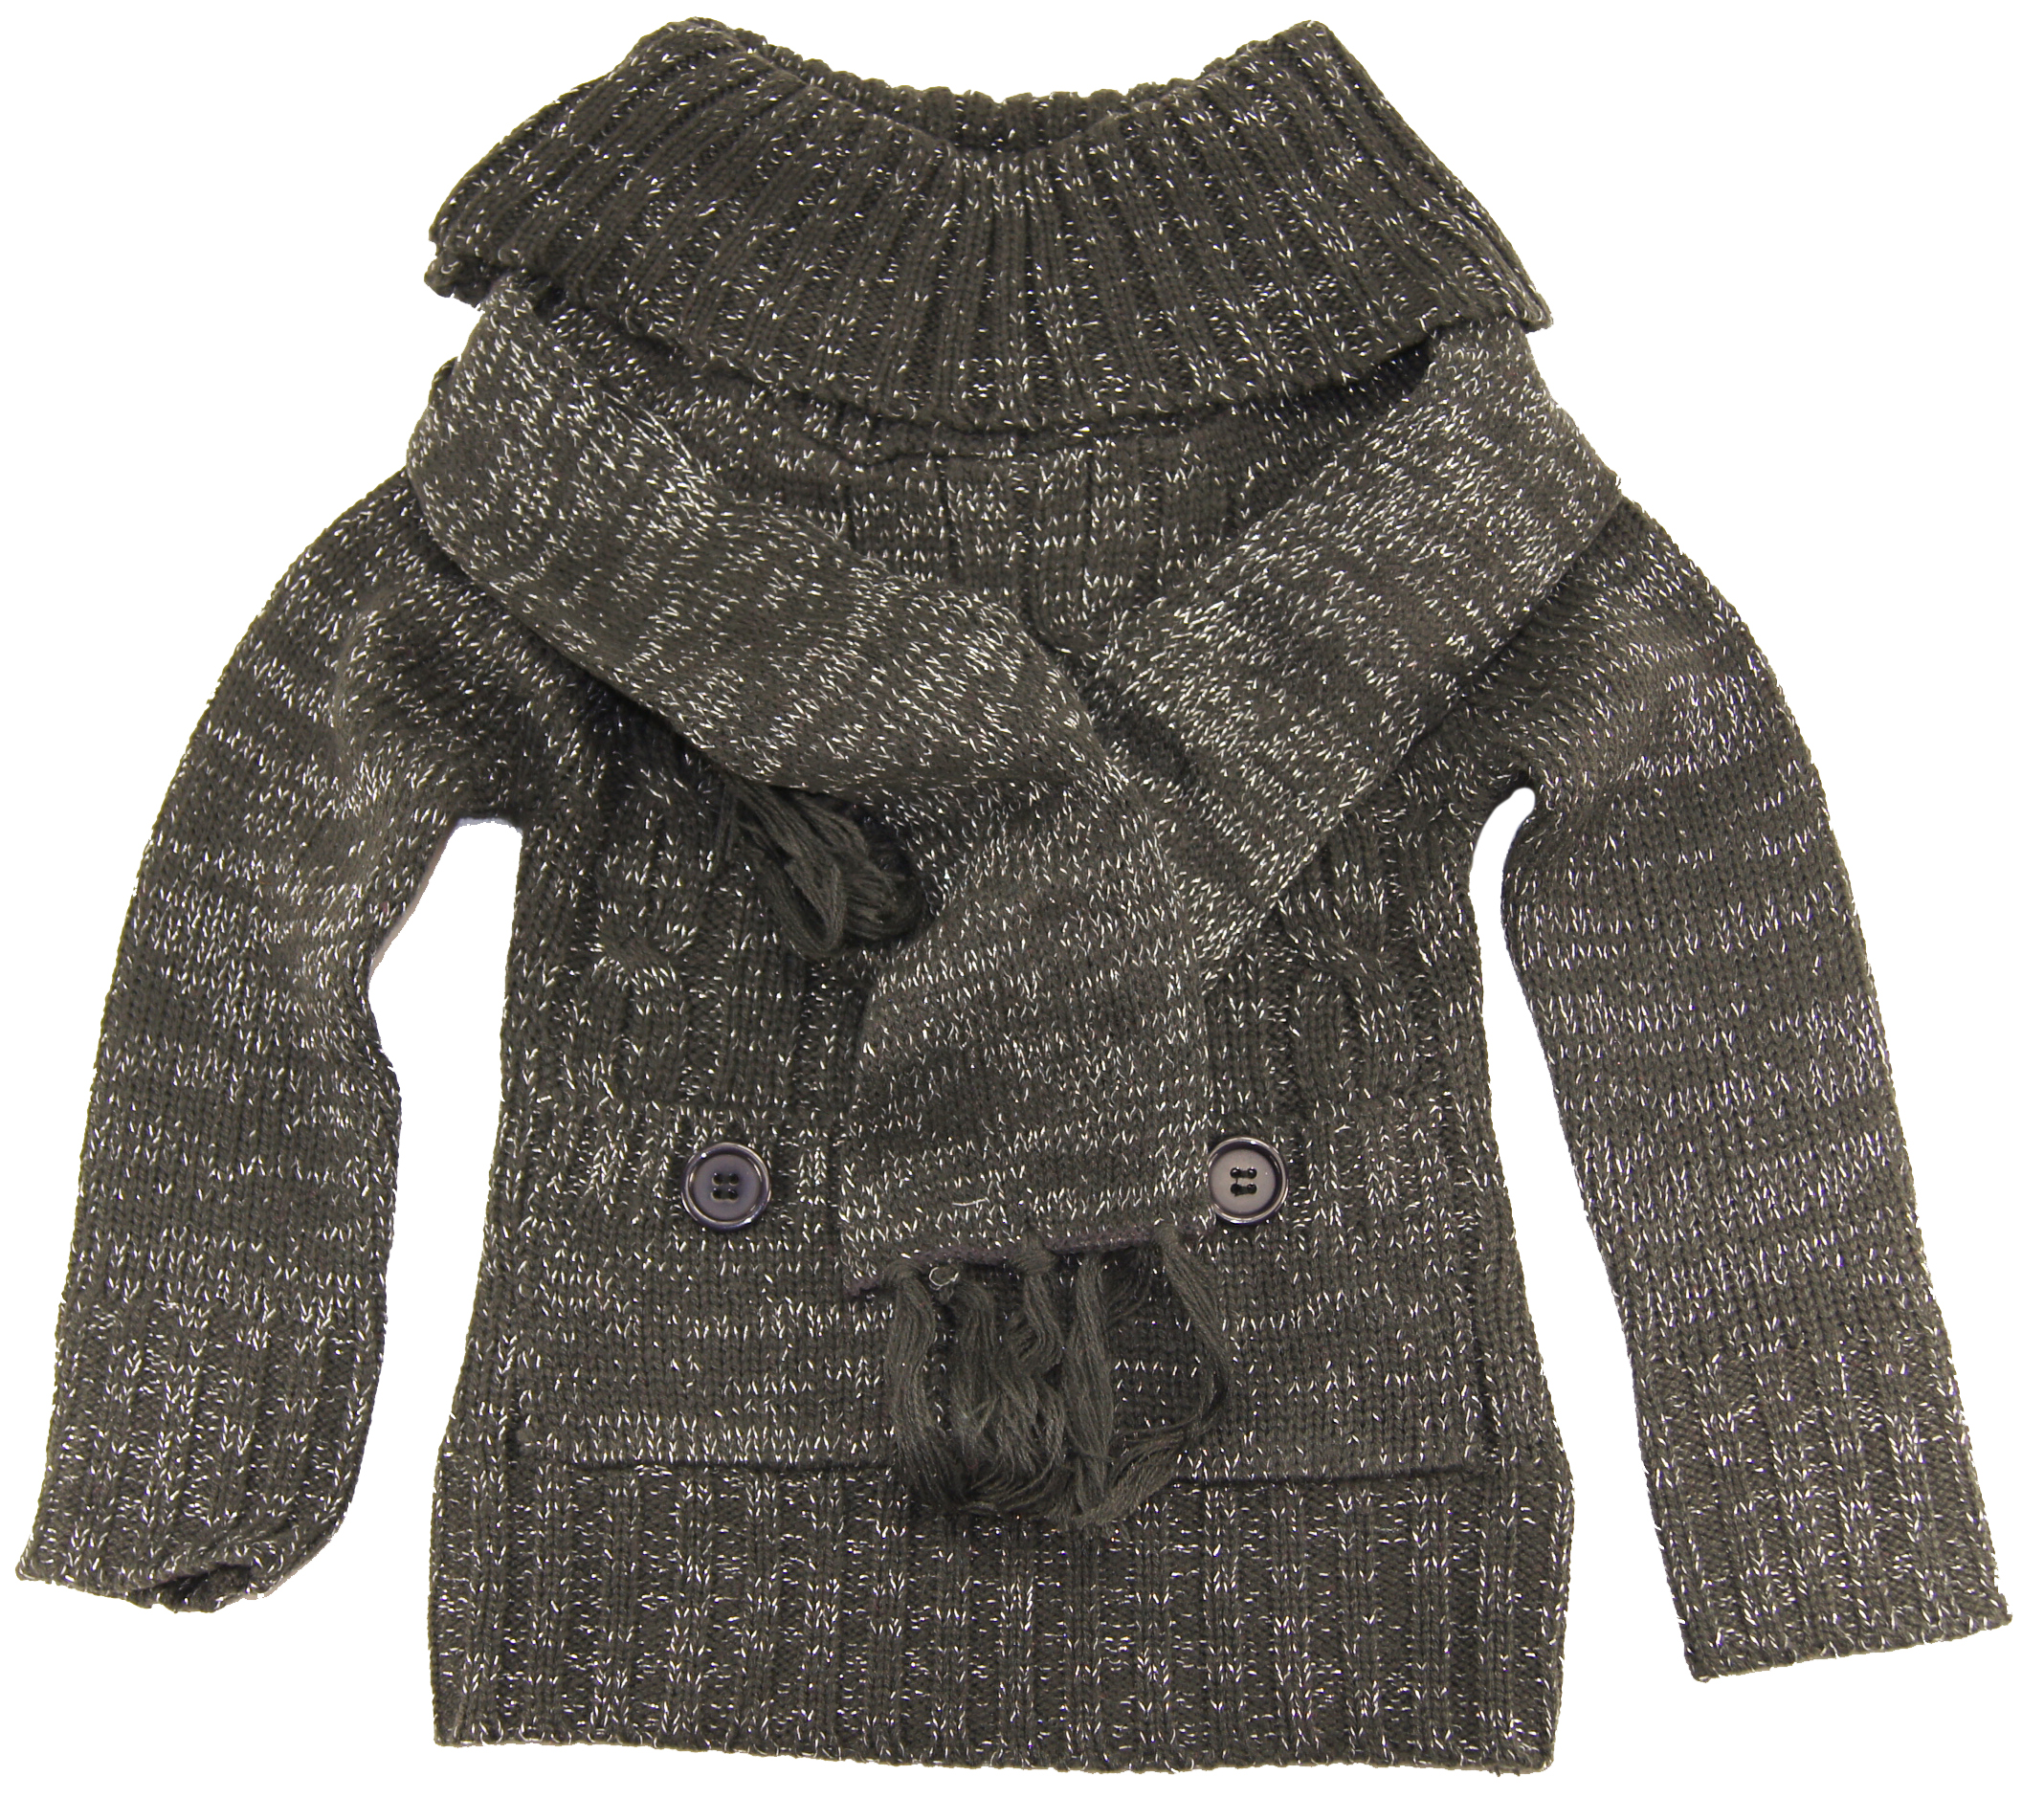 Dollhouse Toddler Girls 2-6X Dark Gray Turtleneck Cardigan Sweater Scarf Set at Sears.com